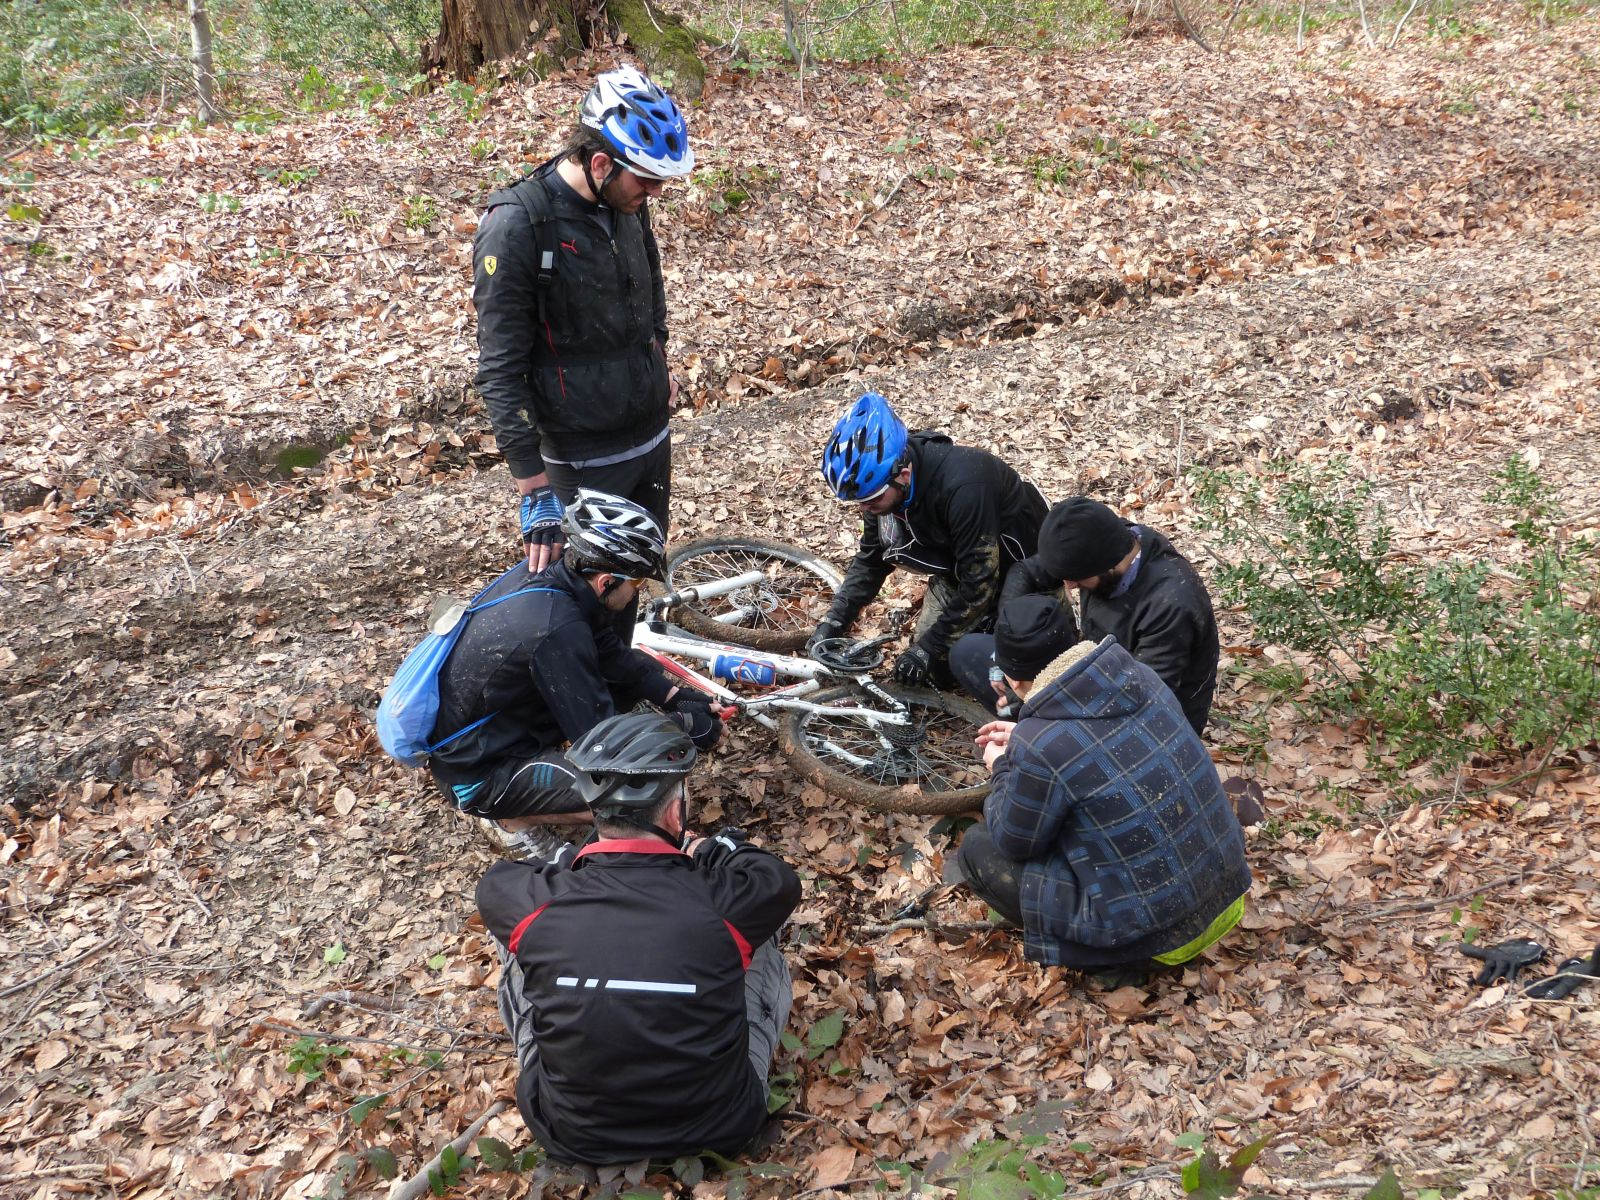 Teamwork for fixing a bike